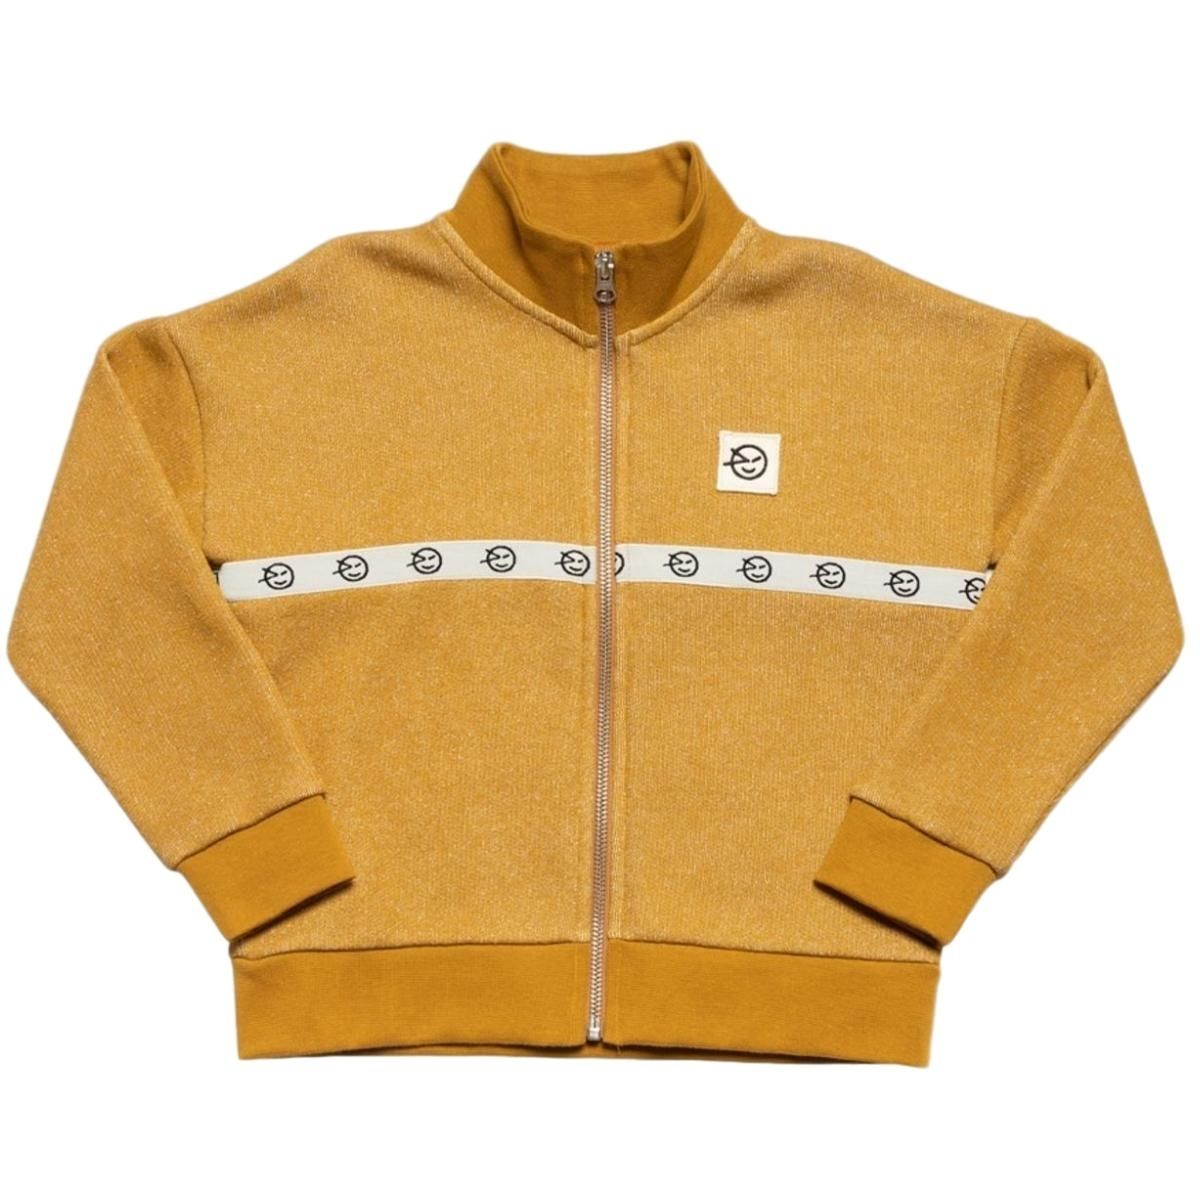 Wynken - Modern Track Top Golden - 1